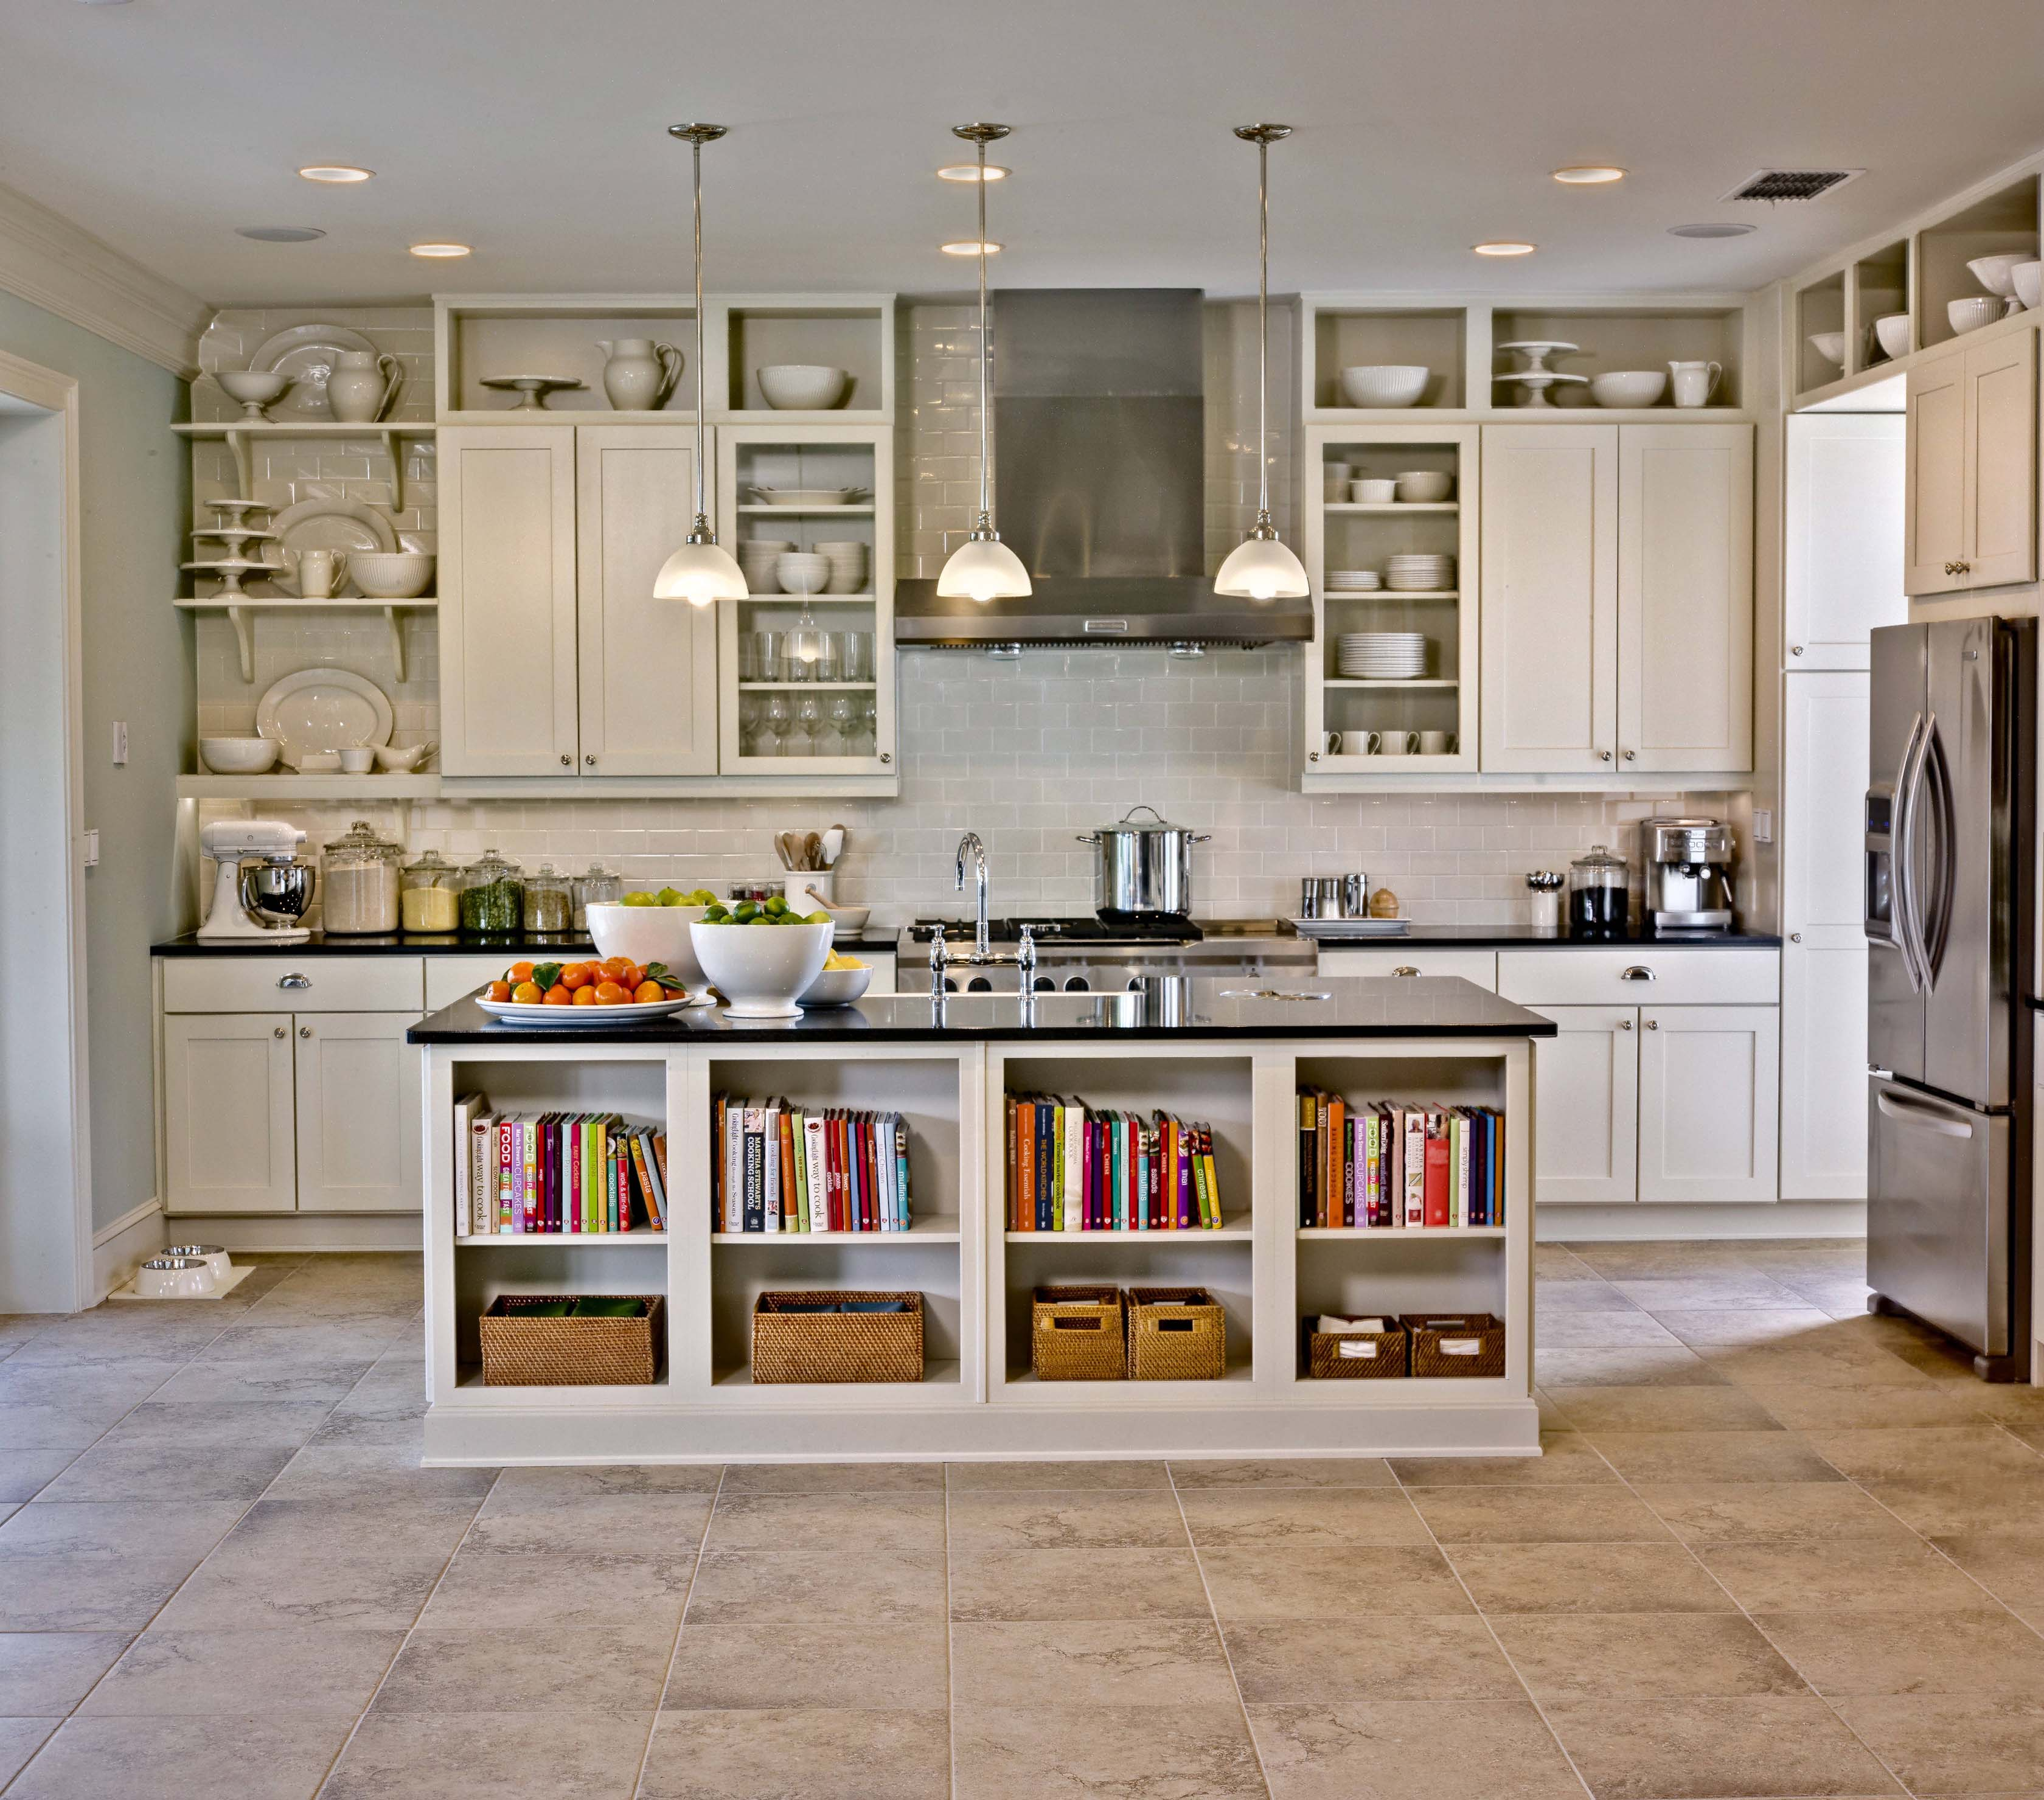 Spring cleaning kitchen cabinets - Builder Concept Home 2011